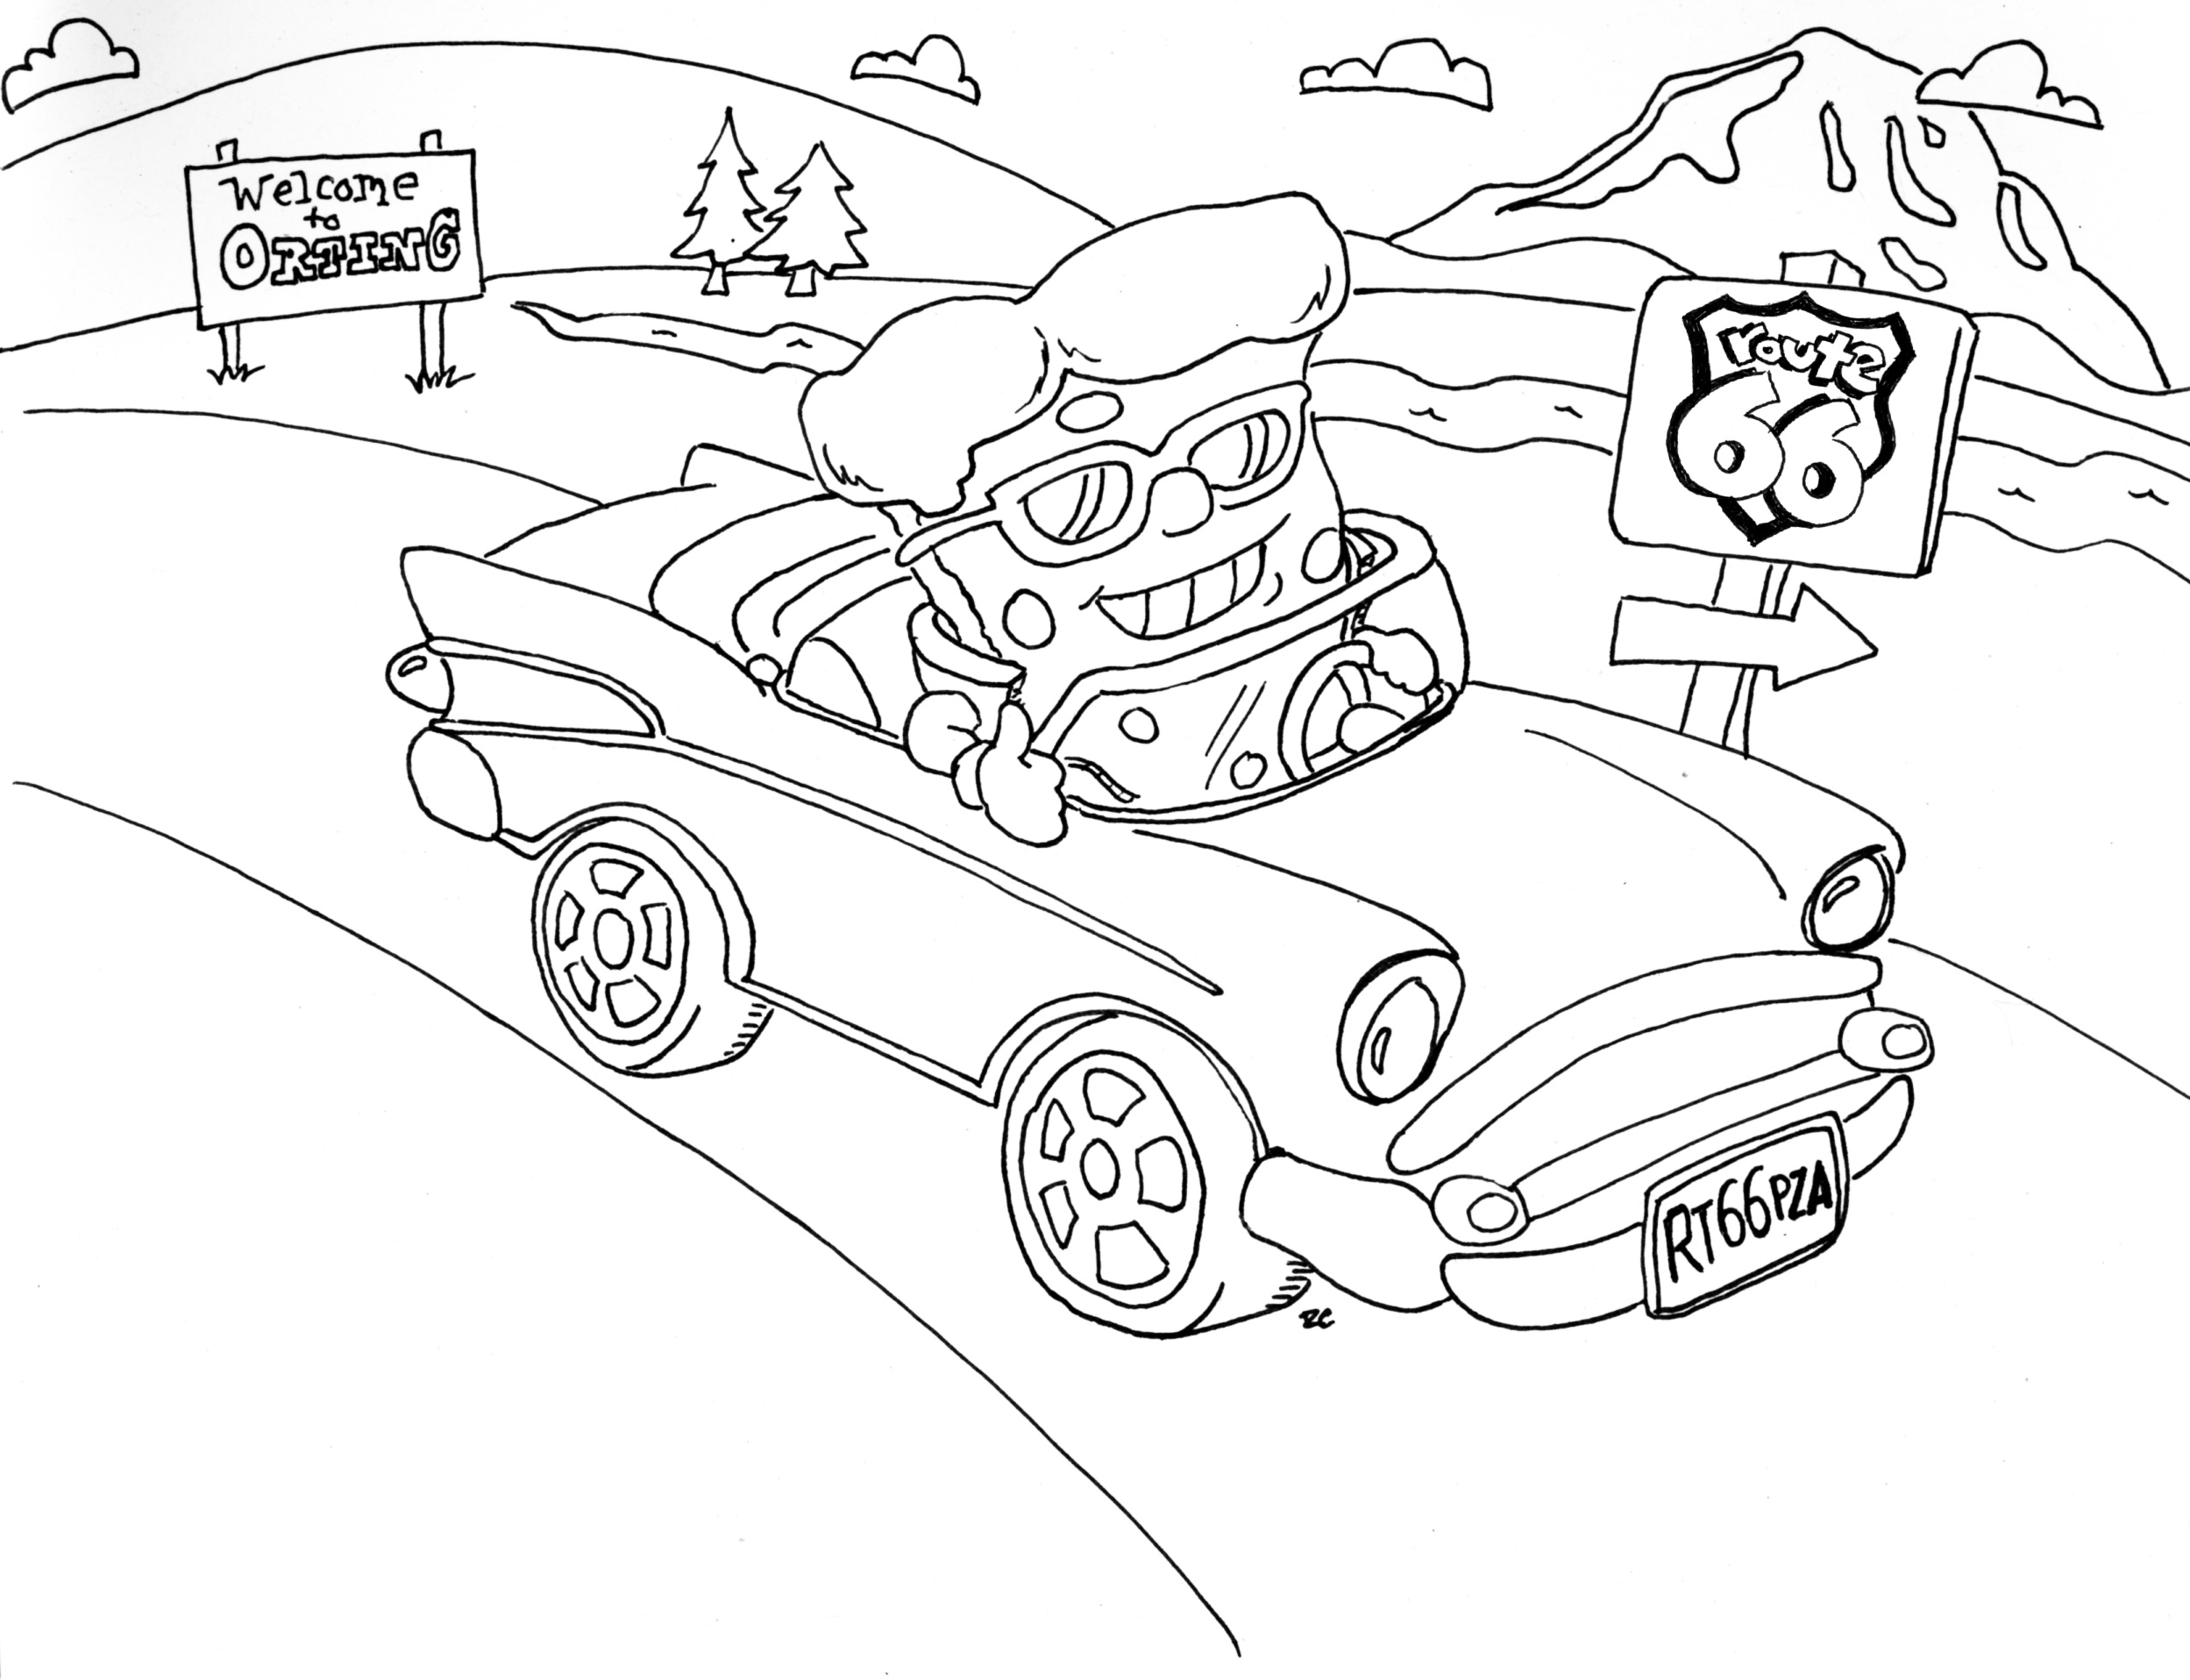 Starbucks Cup Coloring Sheets Coloring Pages